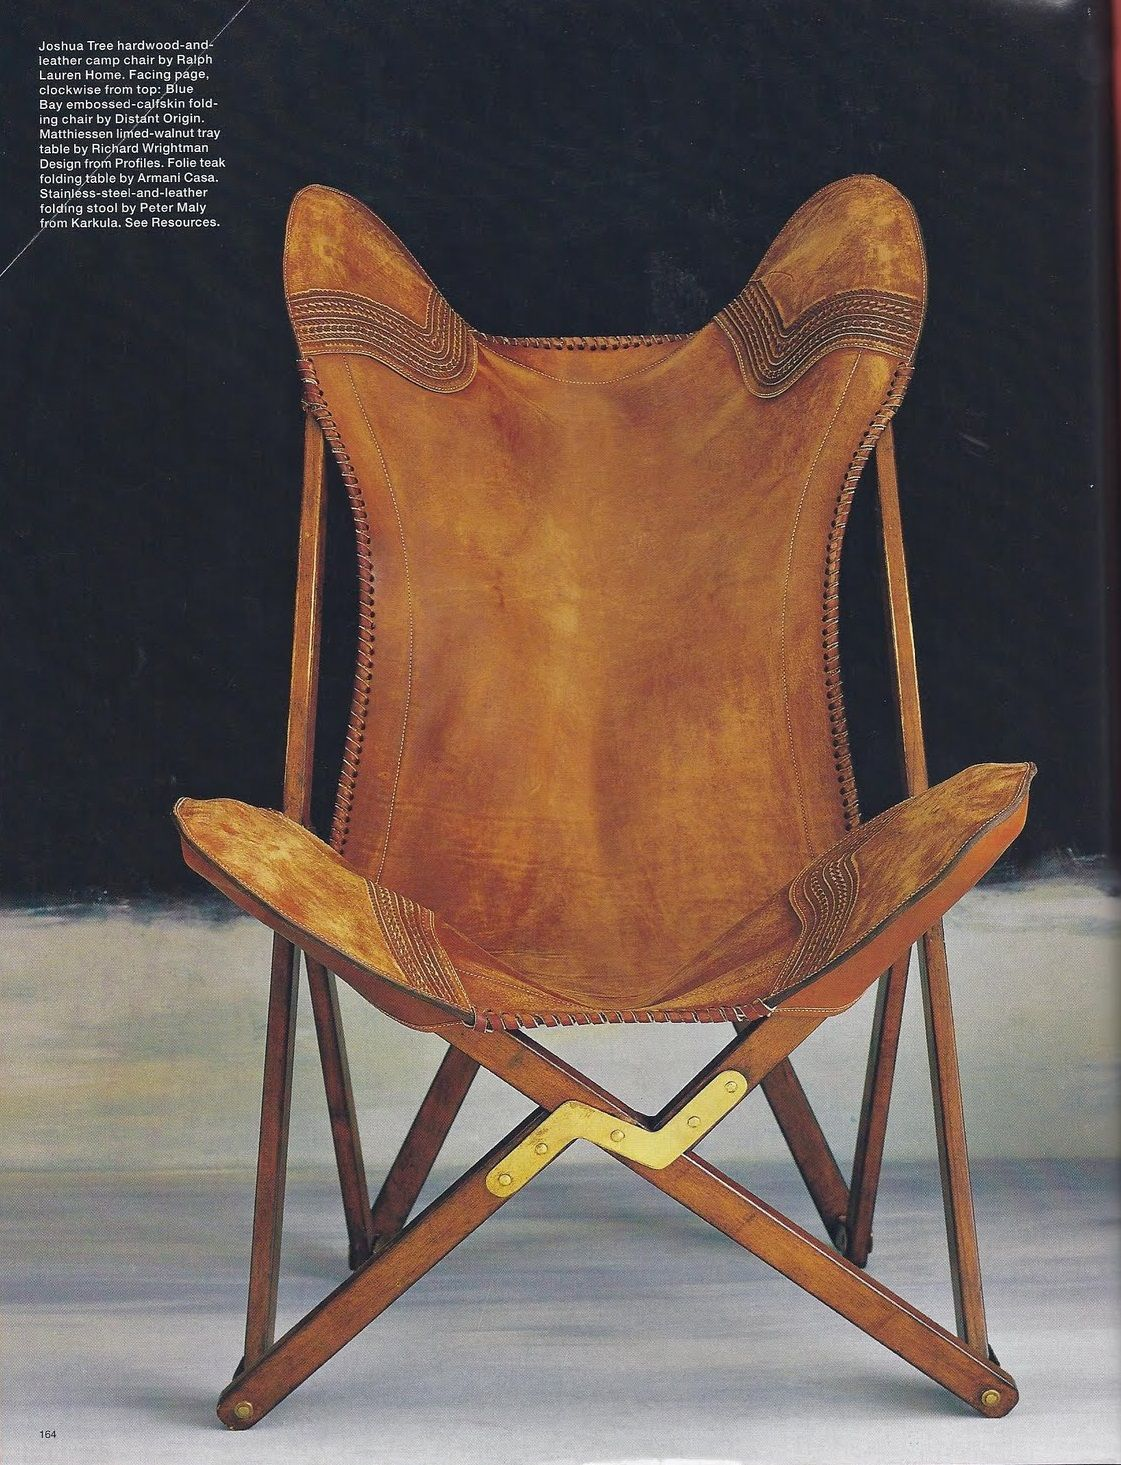 Lovely Ralph Lauren Joshua Tree Camp Chair Picture Speaks For Itself  Just A Great  Chair